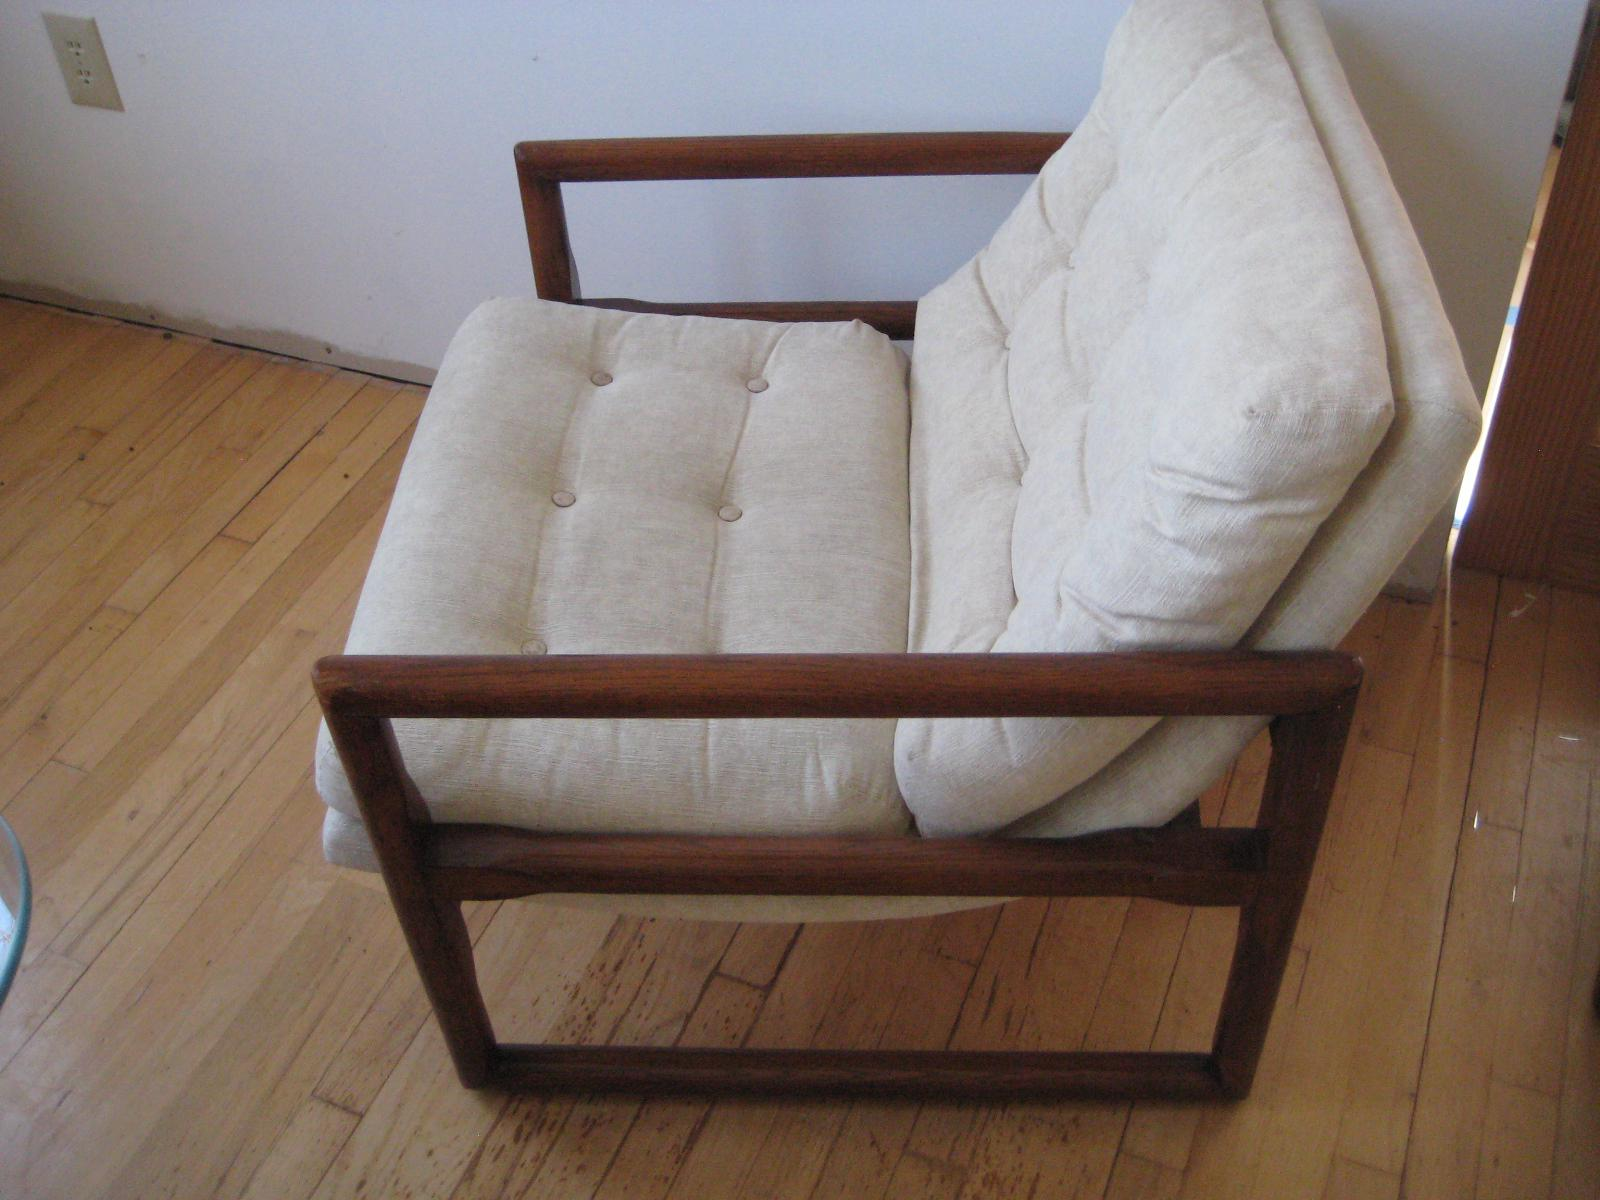 FABULOUS MILO BAUGHMAN Midcentury Cube Chair From The Early 1970s. This  Chair Was In Storage